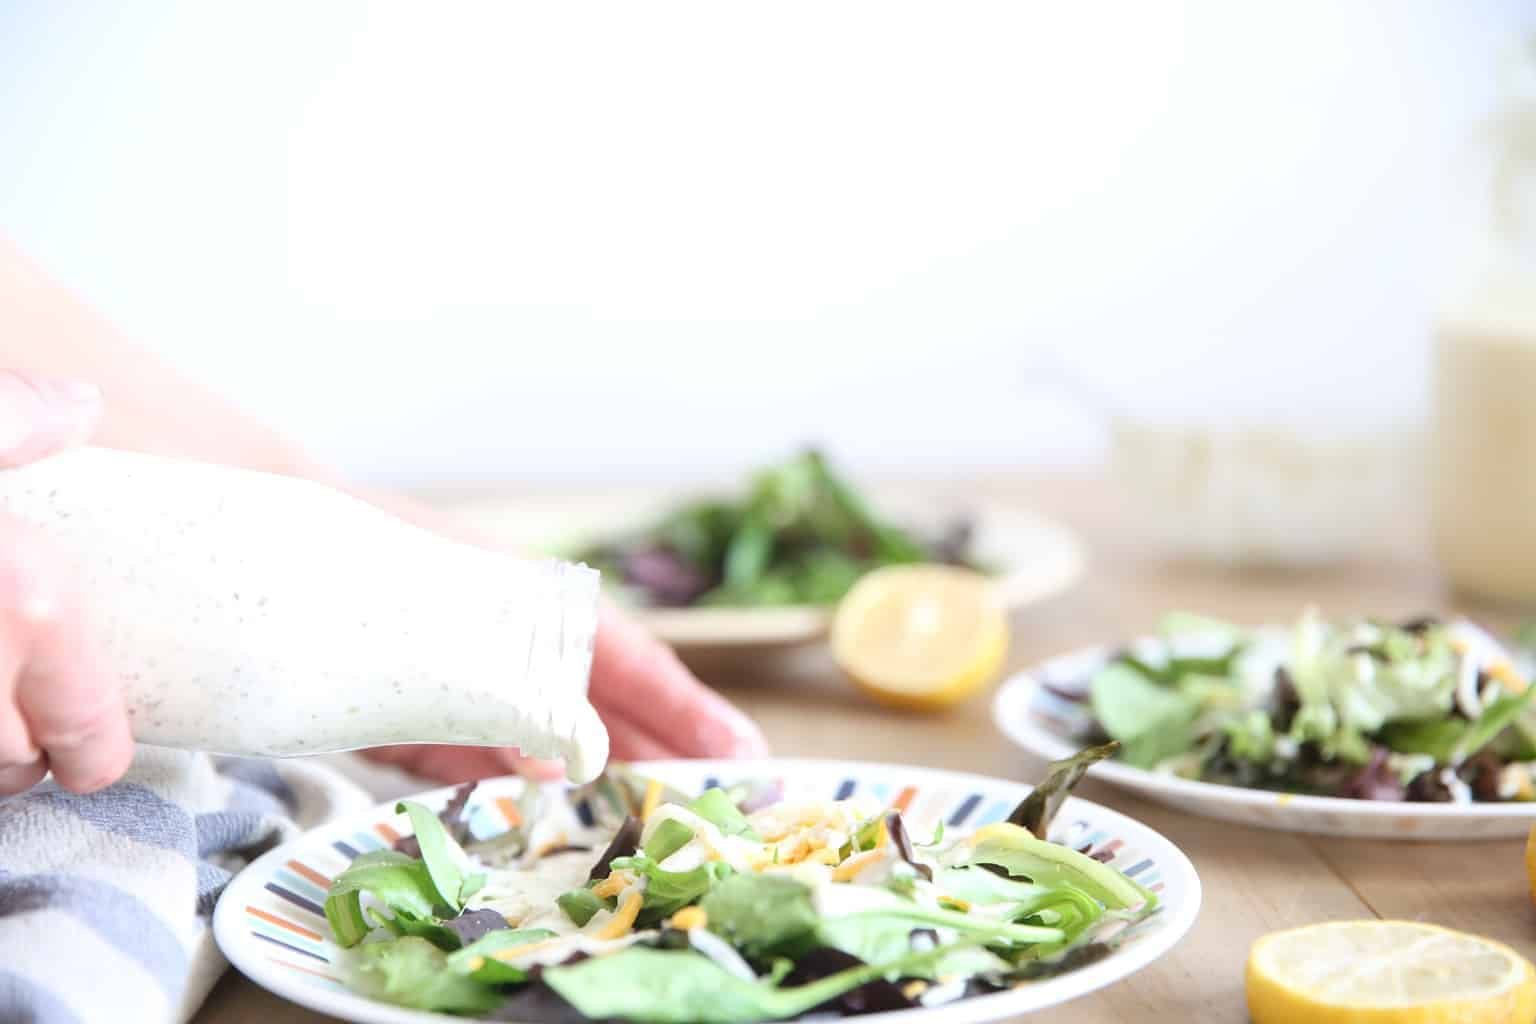 pouring homemade ranch dressing onto a small plate of salad